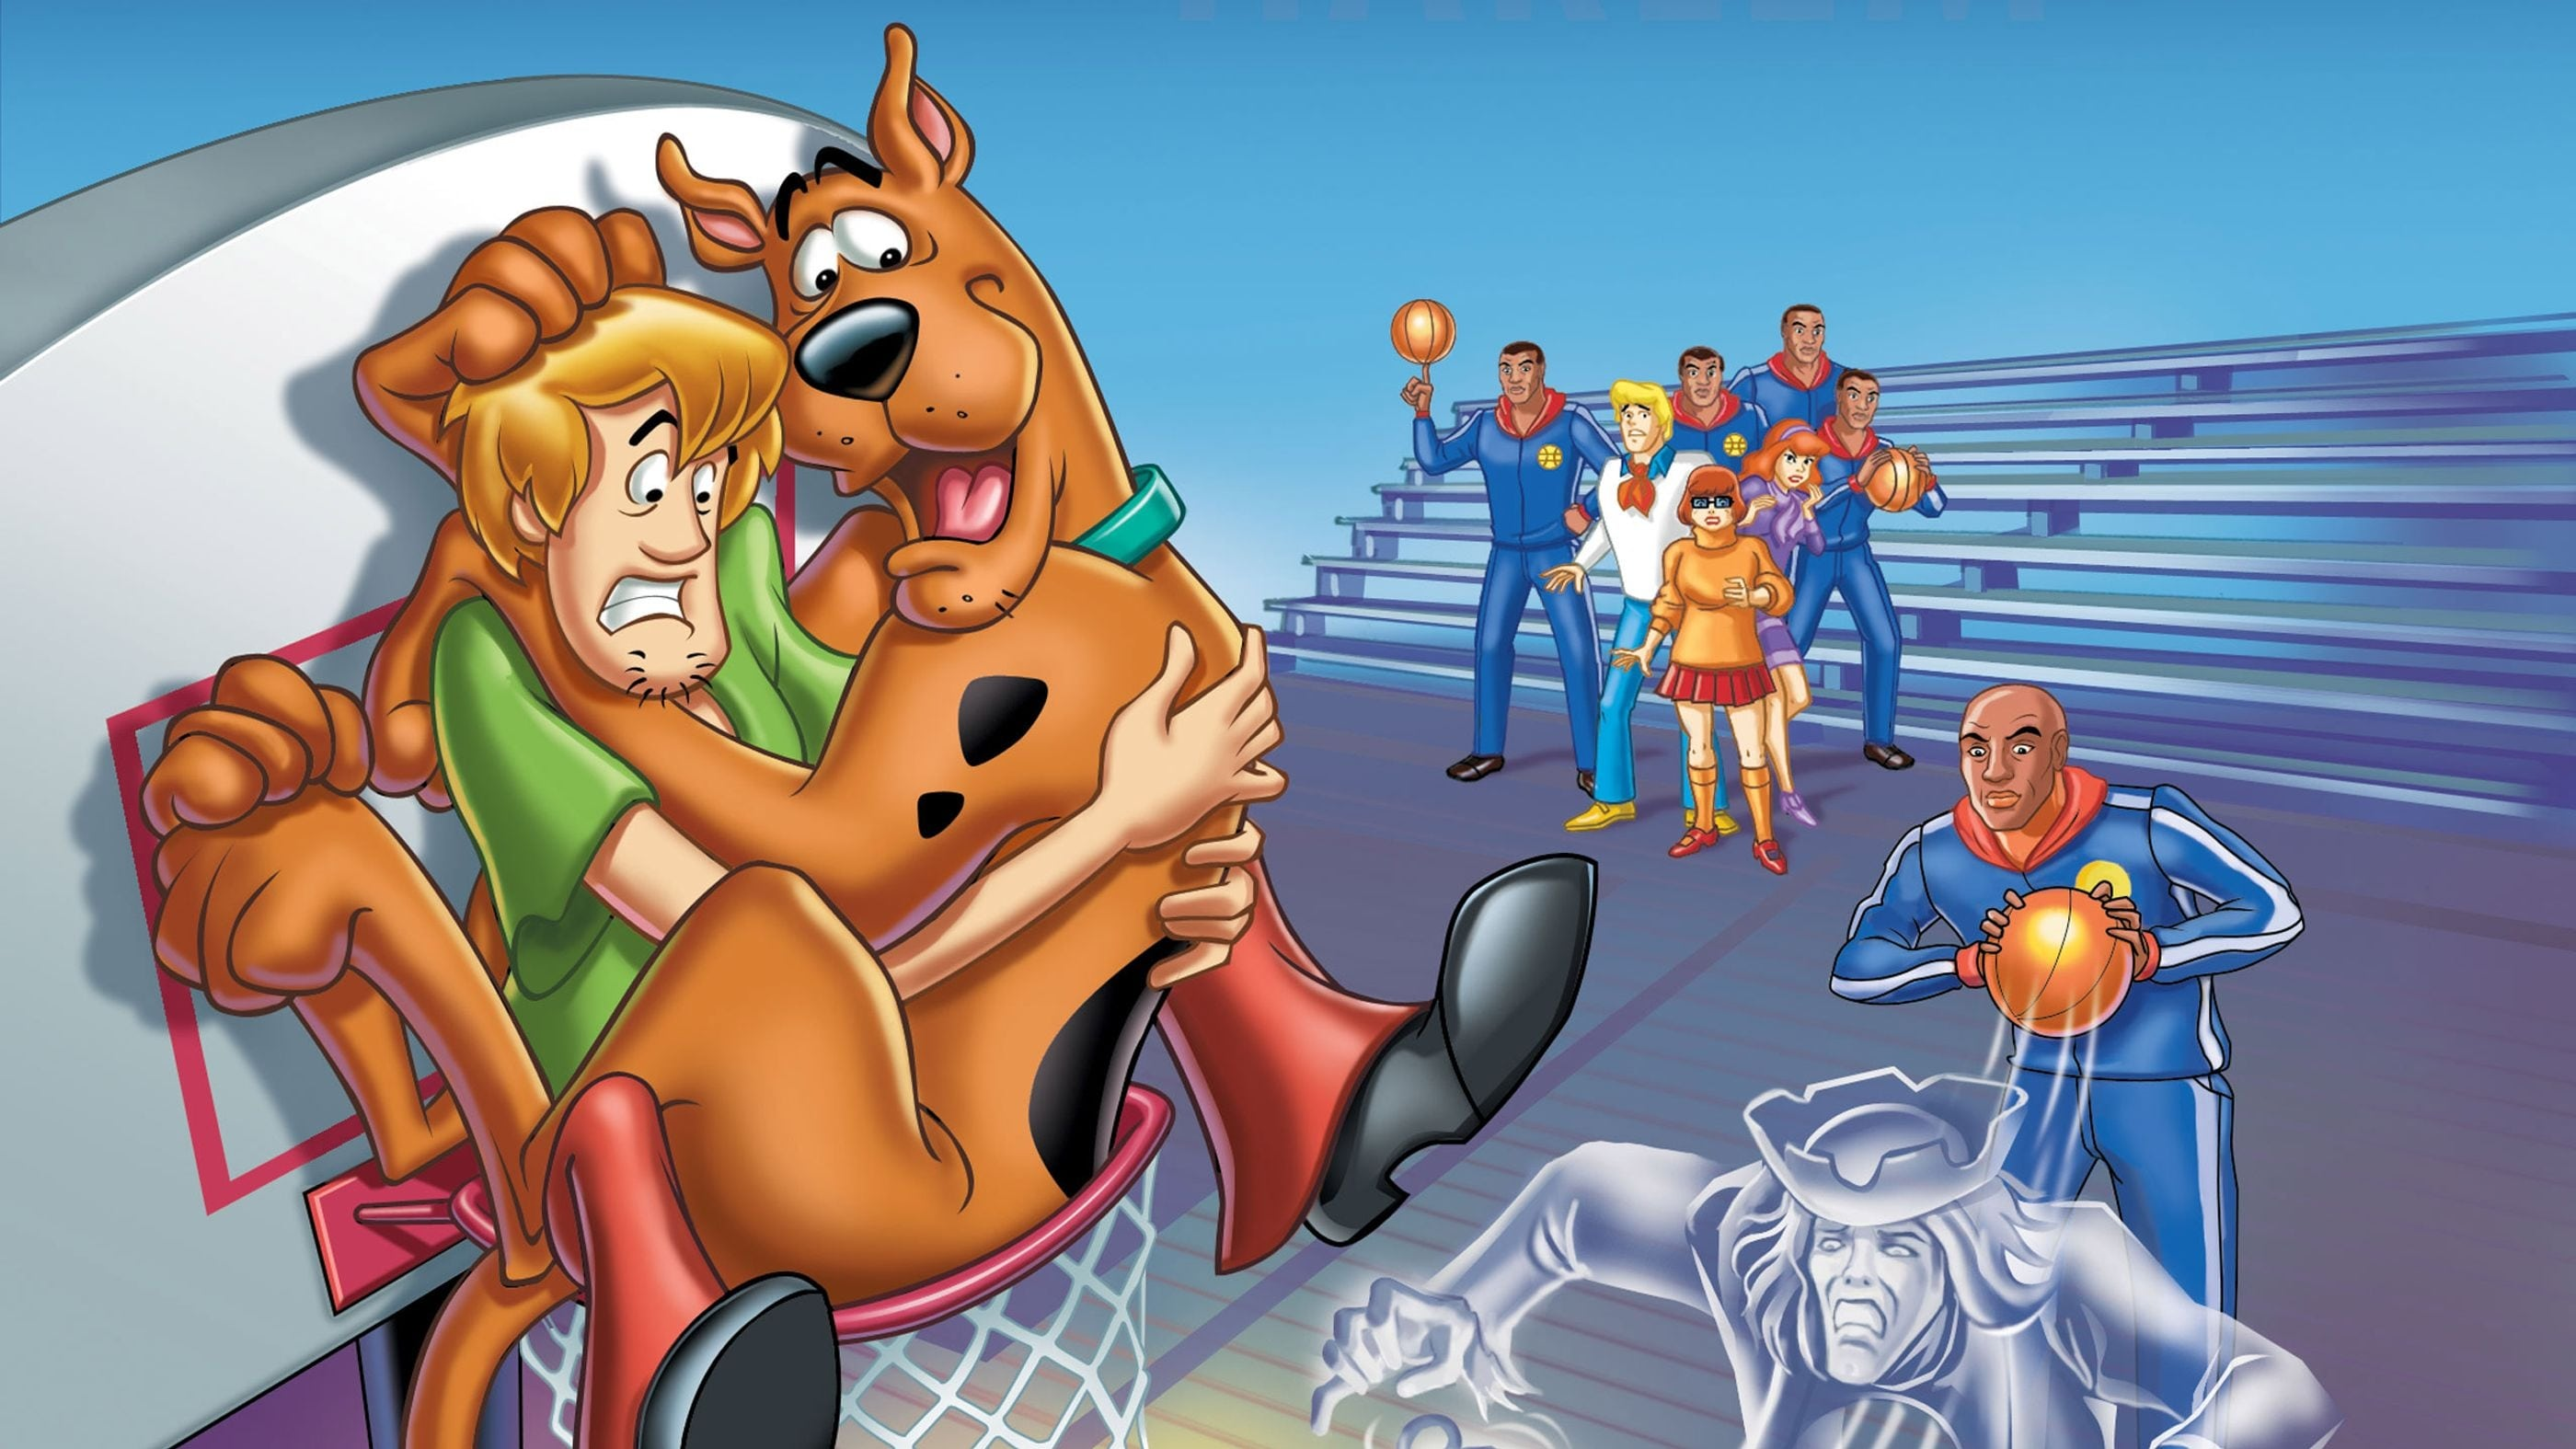 Scooby-Doo ! rencontre les Harlem Globe Trotters (1972)